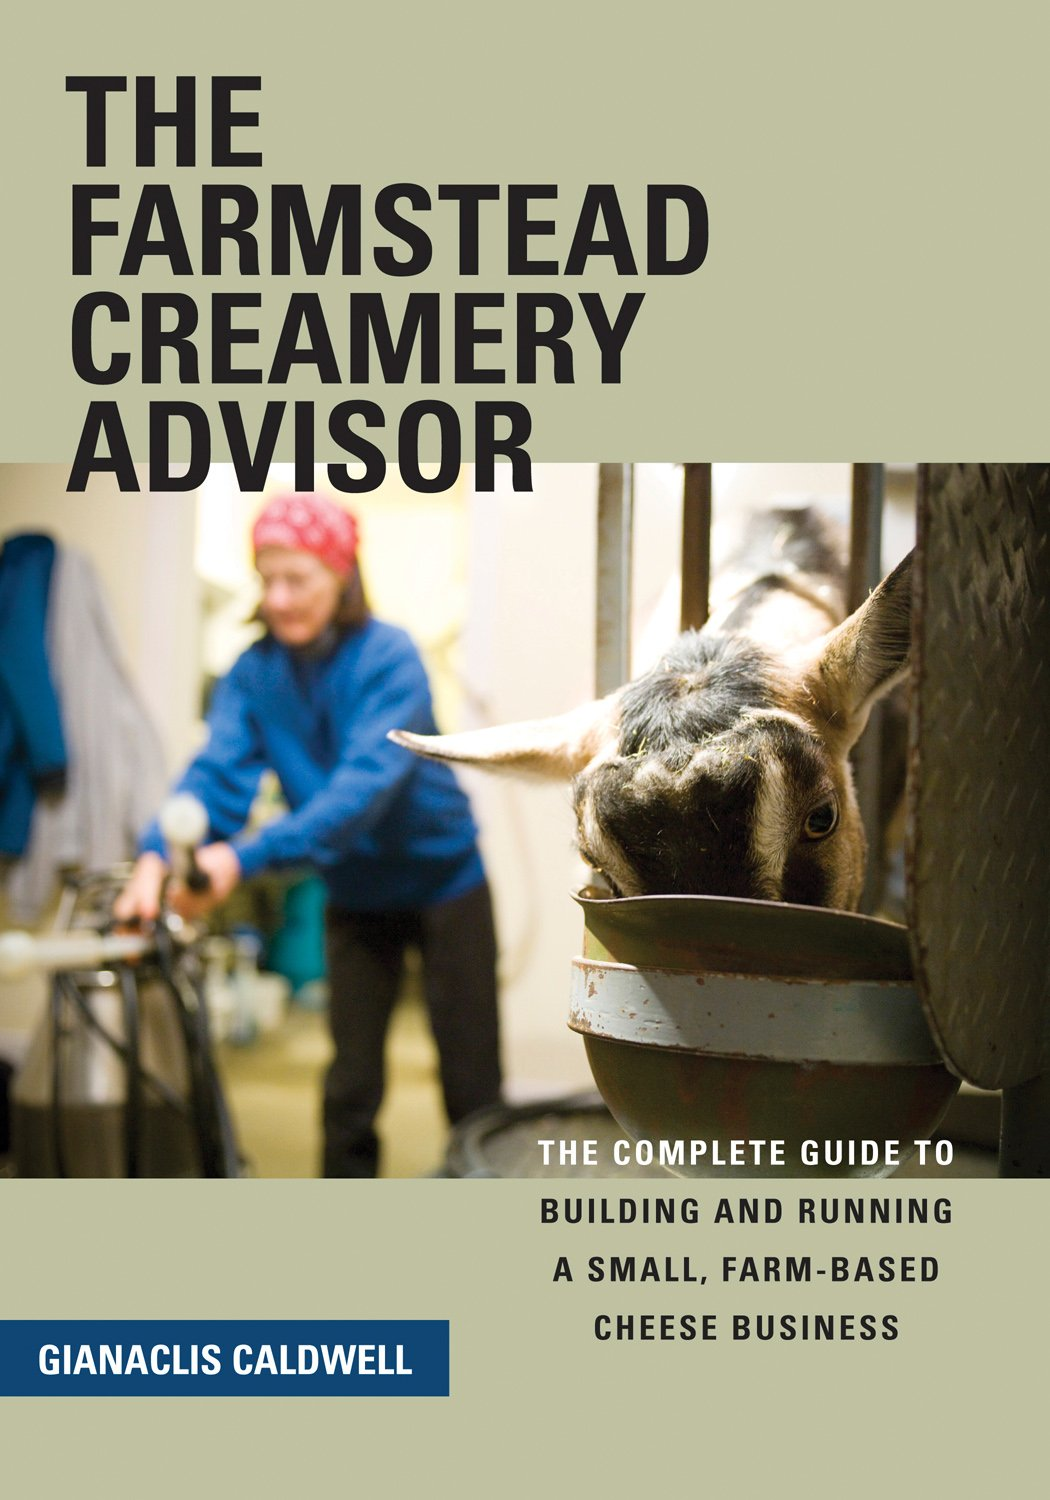 The Farmstead Creamery Advisor: The Complete Guide to Building and Running a Small, Farm-Based Cheese Business pdf